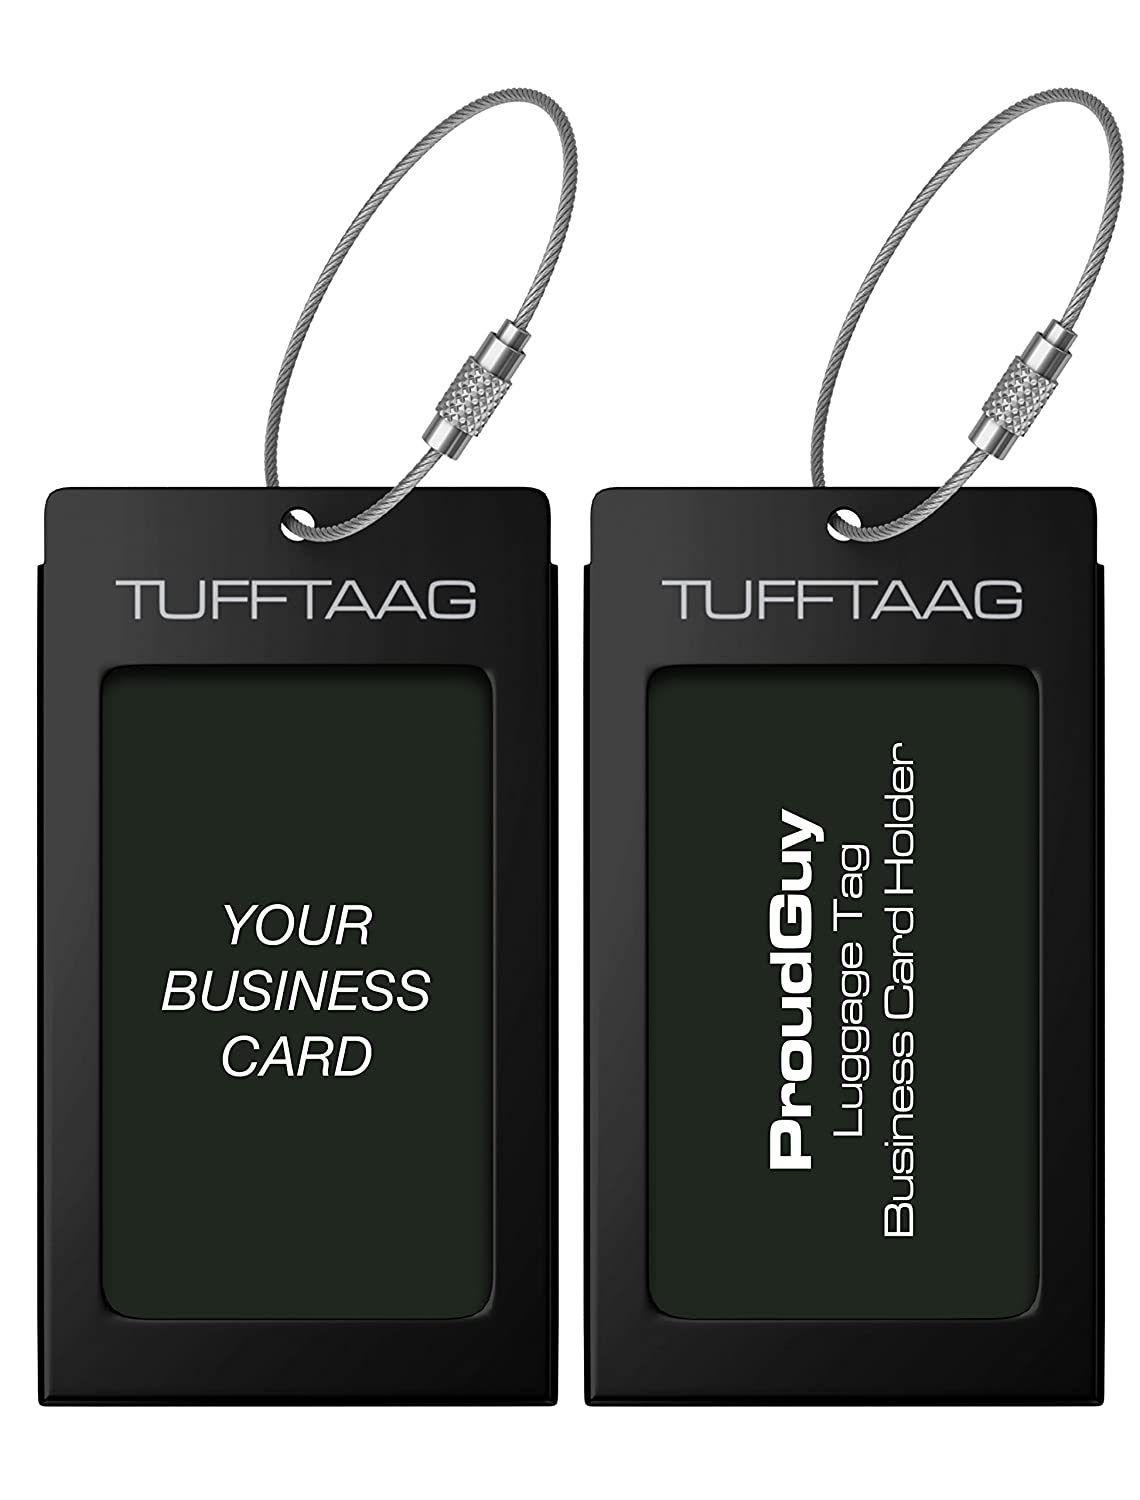 Luggage Tags Business Card Holder TUFFTAAG PAIR Travel ID Bag Tag - Deep Amber ProudGuy LTAG-damber2